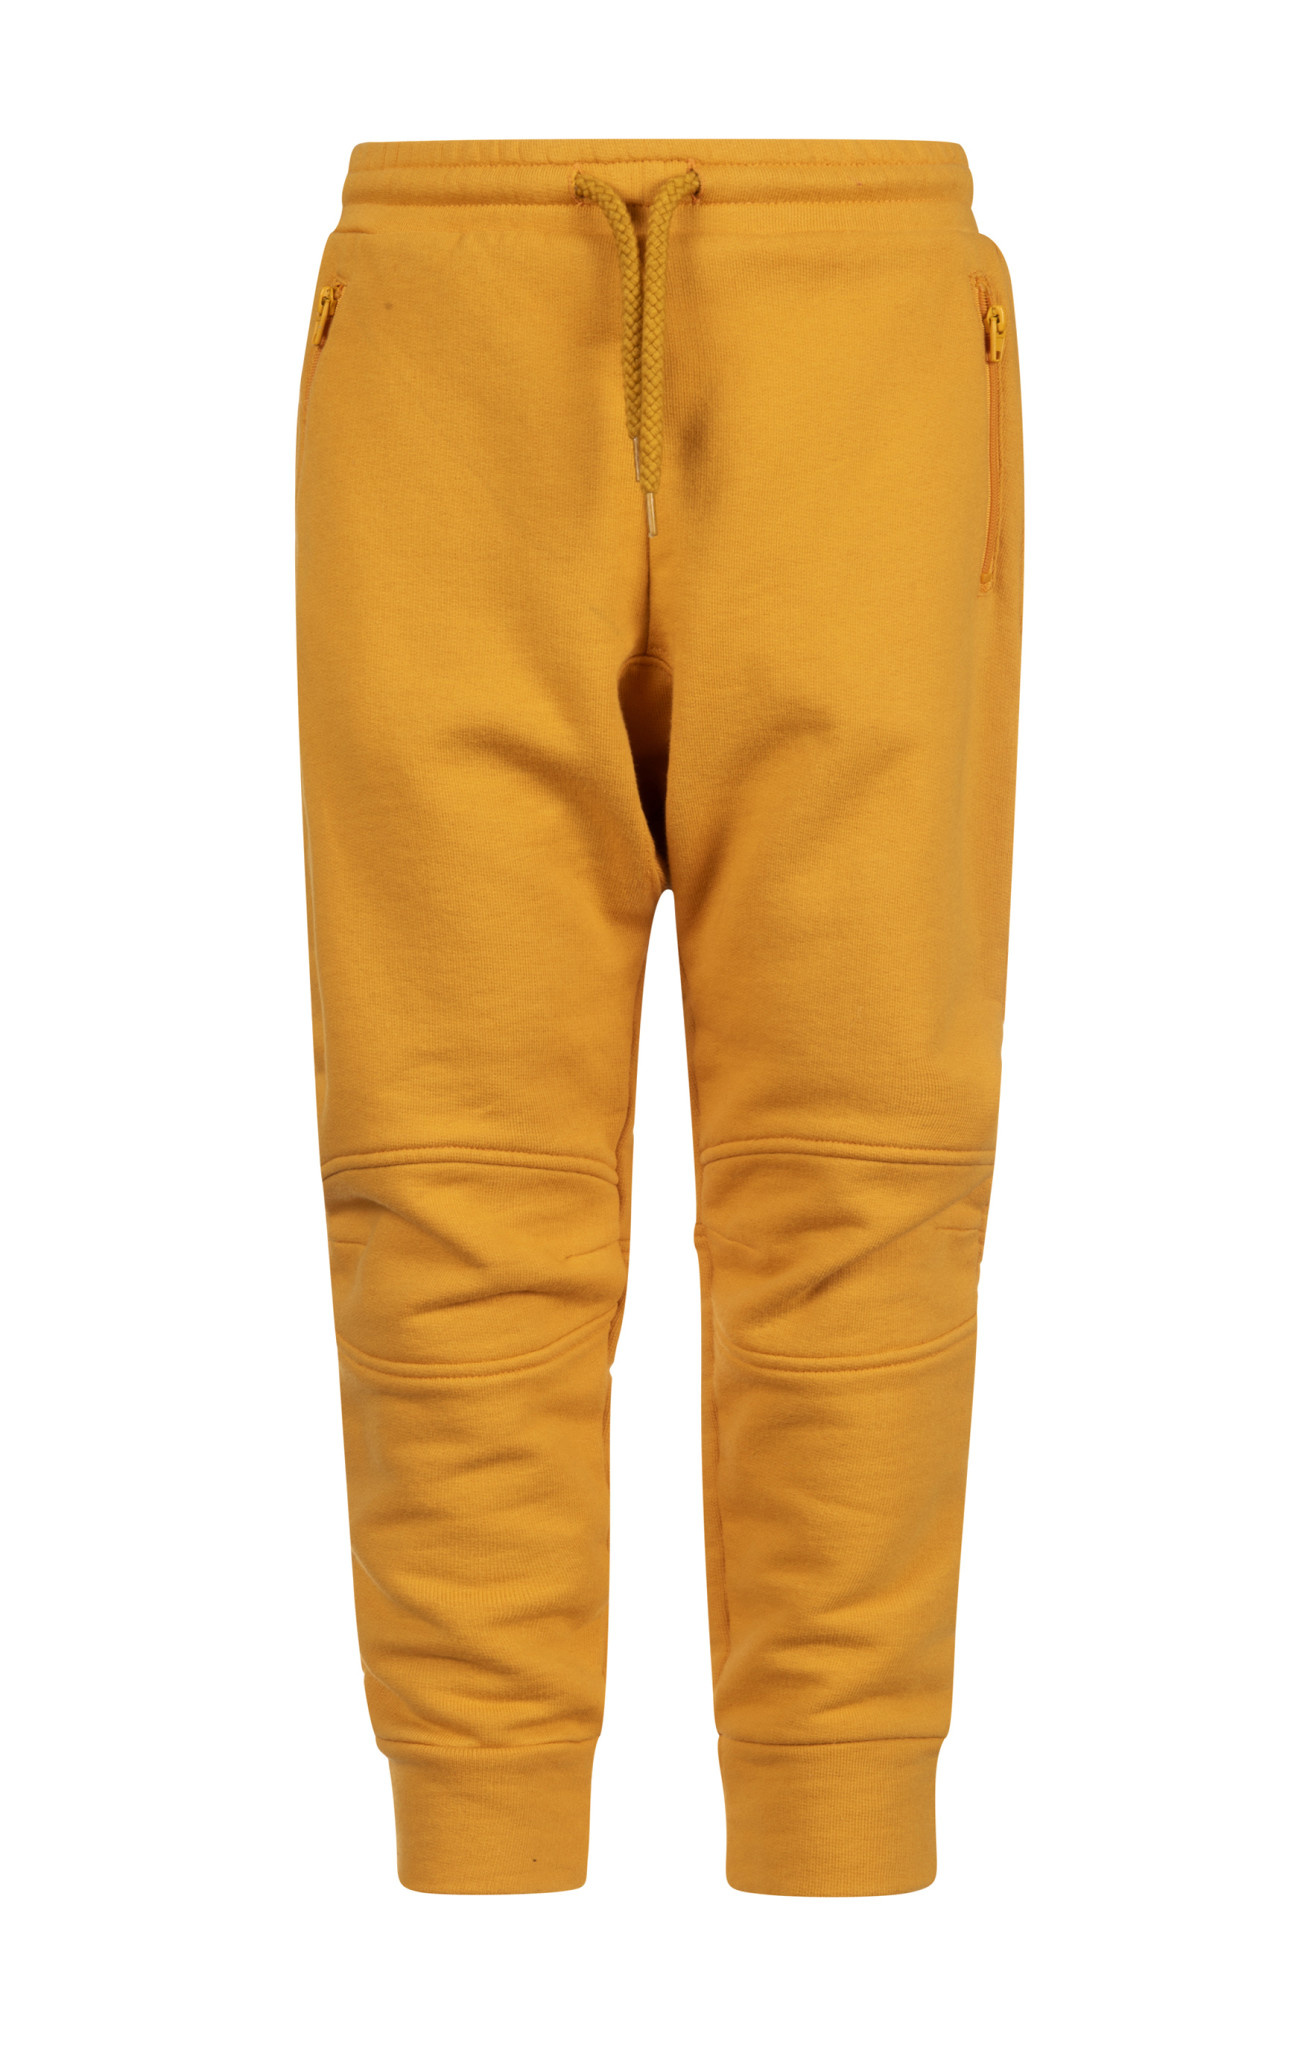 APPAMAN Pastime Sweats